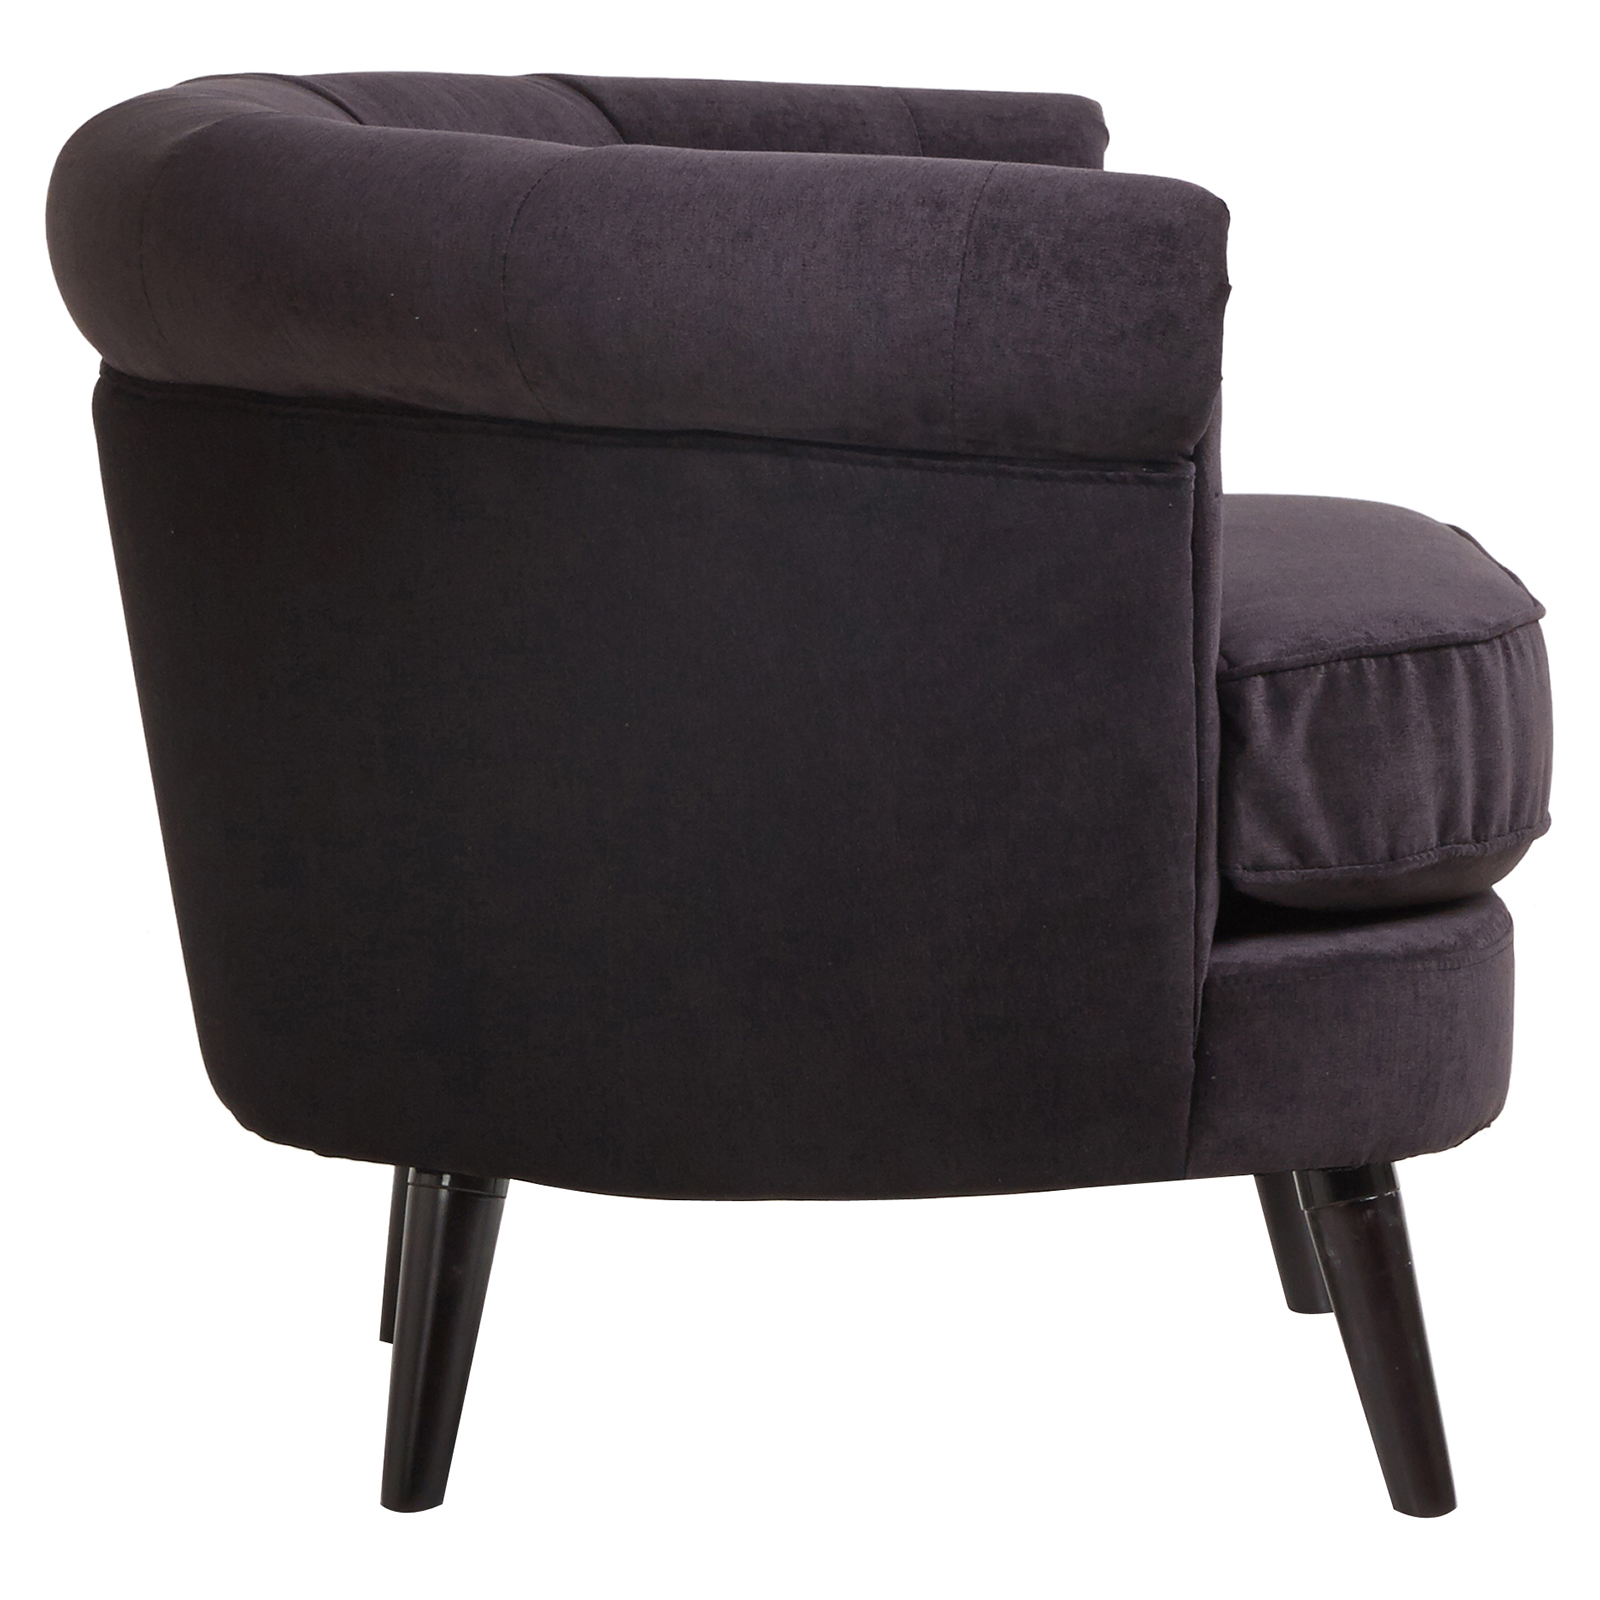 wood arm chair covers stand fitness test black armchair 39olivia 39 design wooden frame fabric